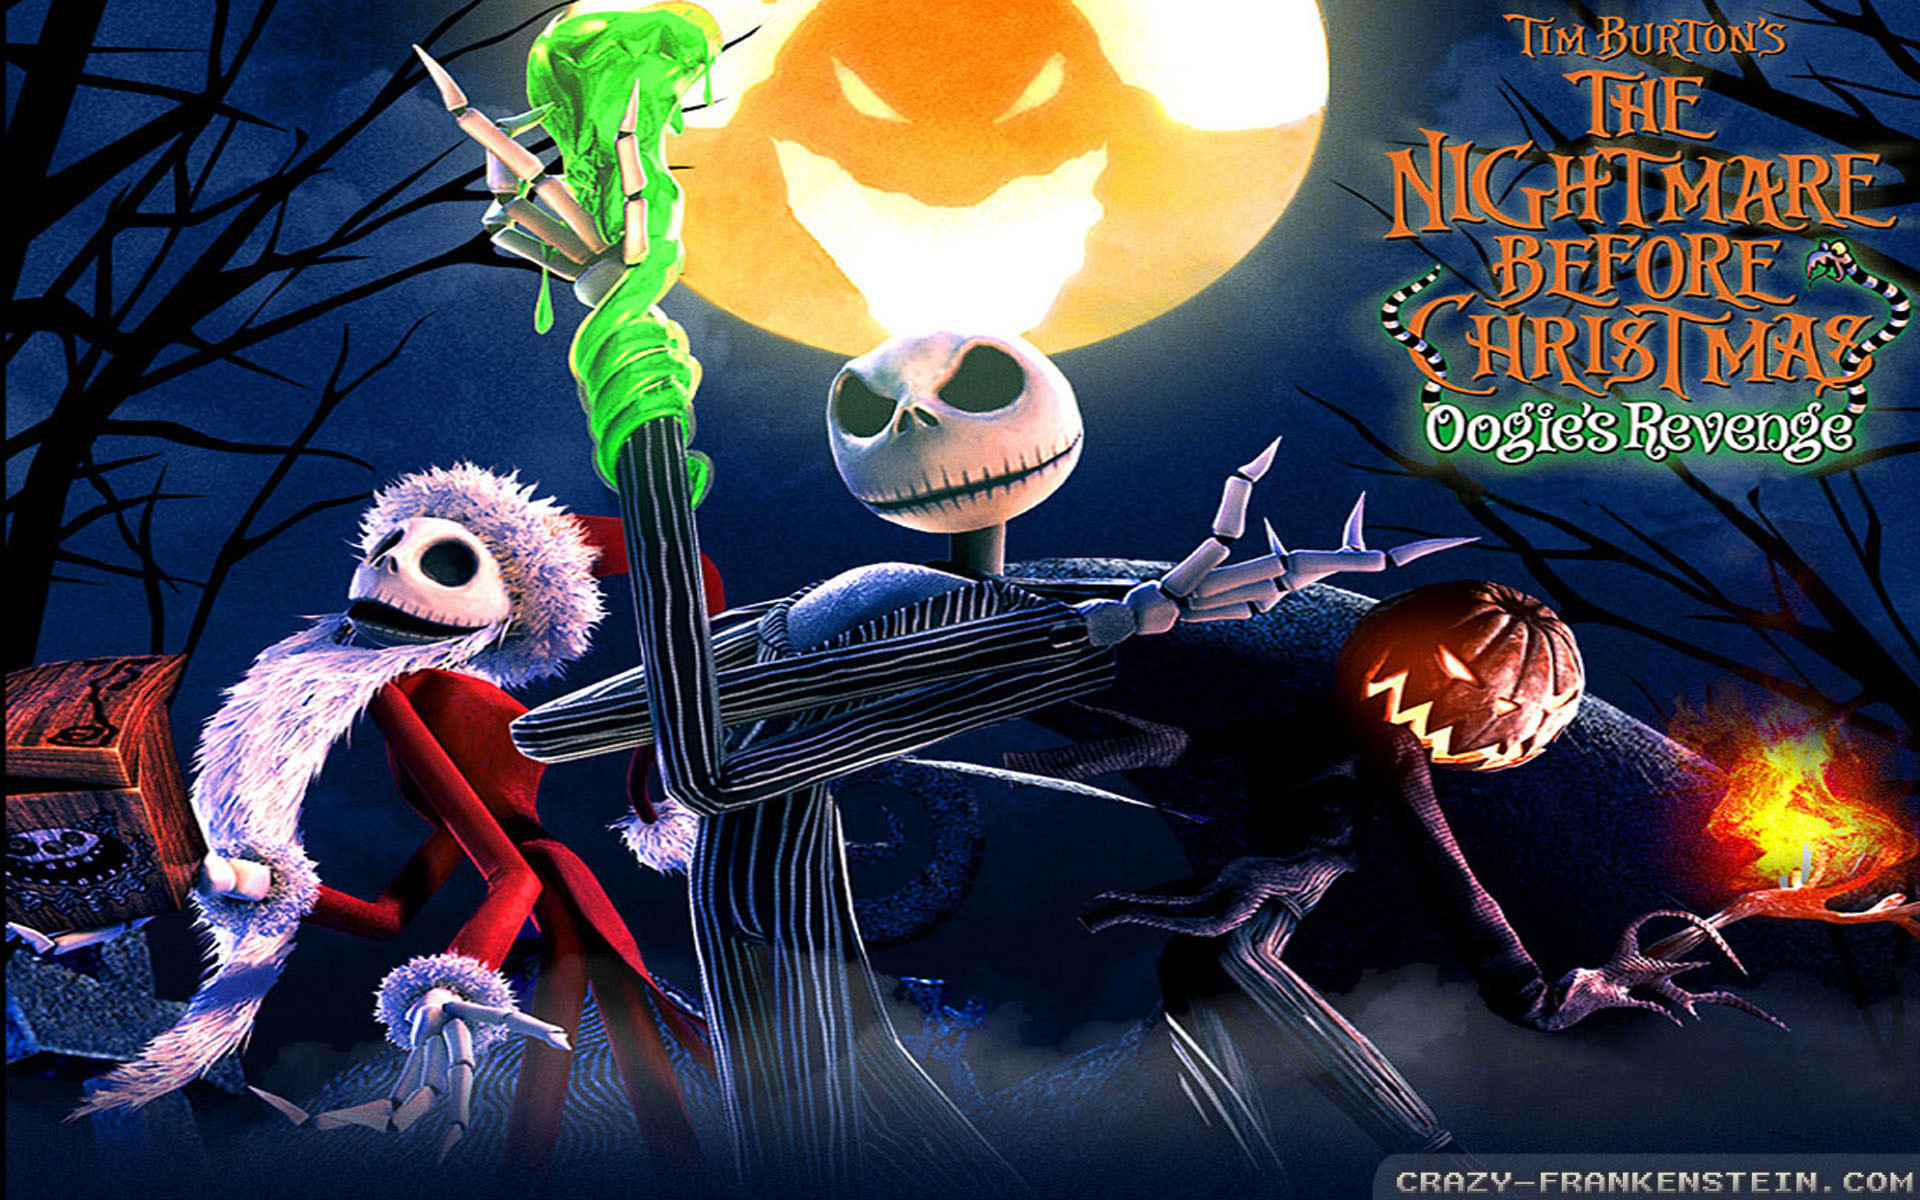 Nightmare Before Christmas Hd Wallpaper.The Night Before Christmas Halloween Best Nightmare Before